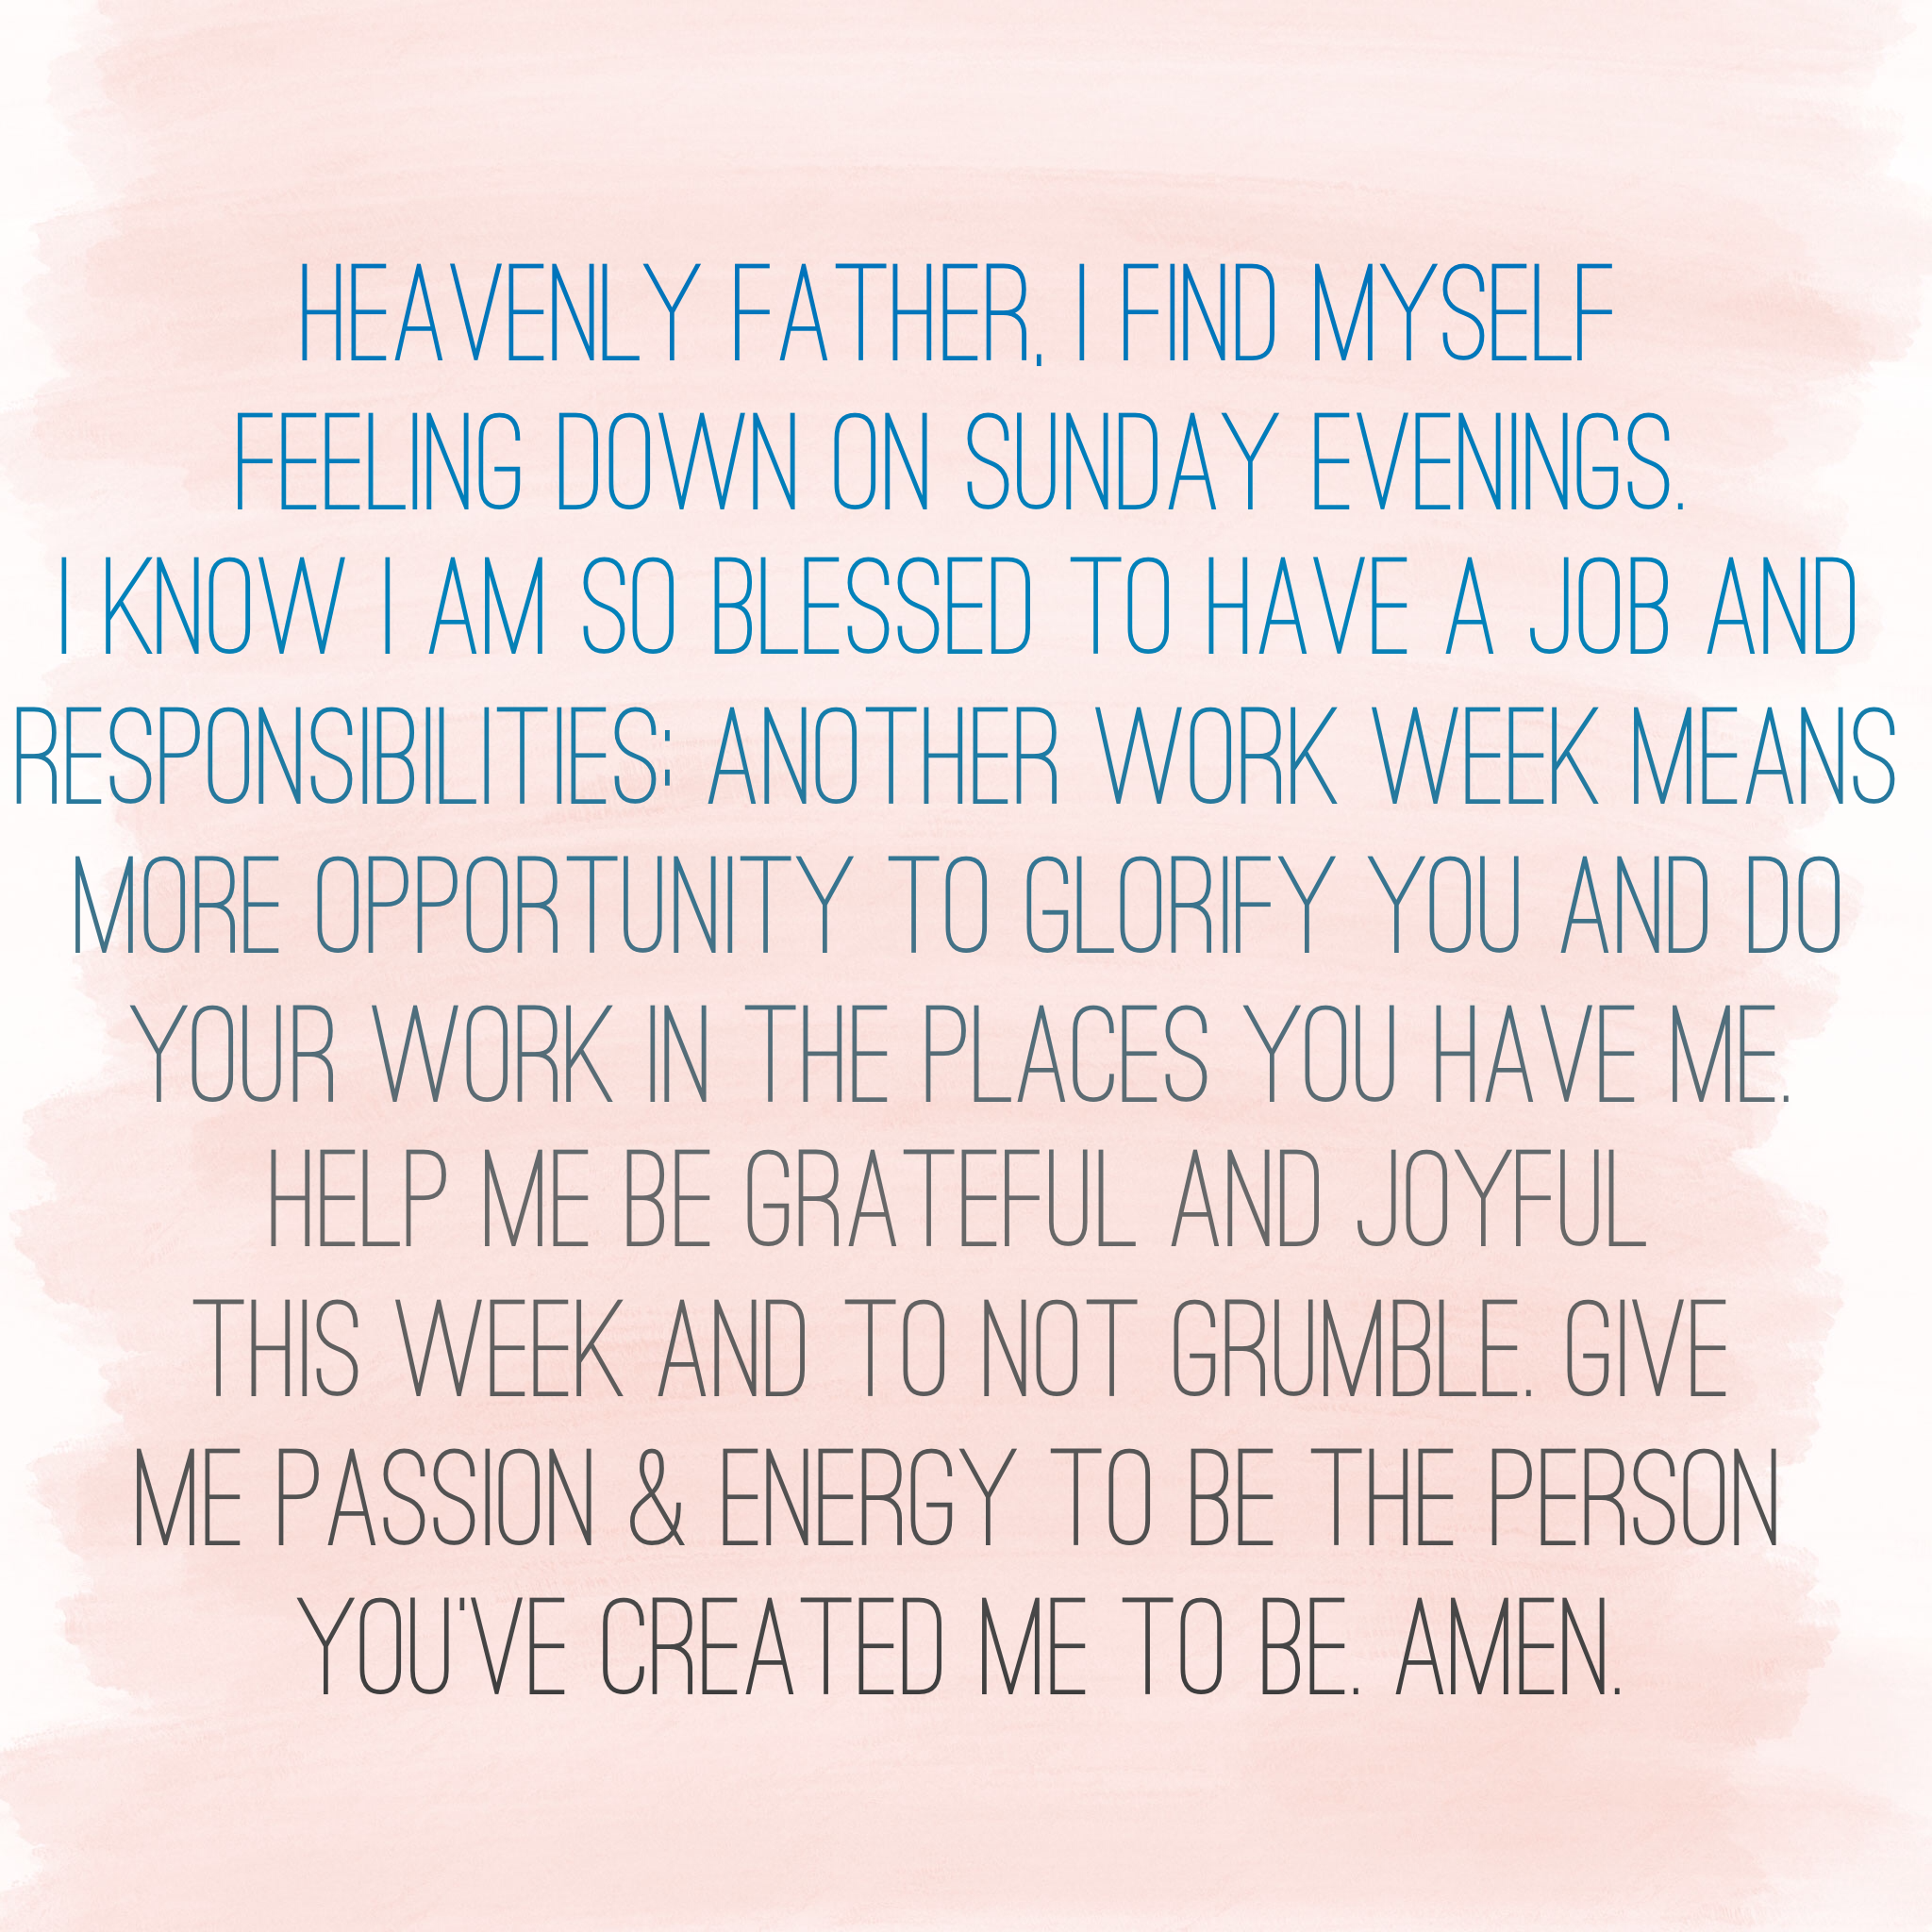 Prayer for Sunday evening. For joy, gratitude, passion, and contentment. God is good.